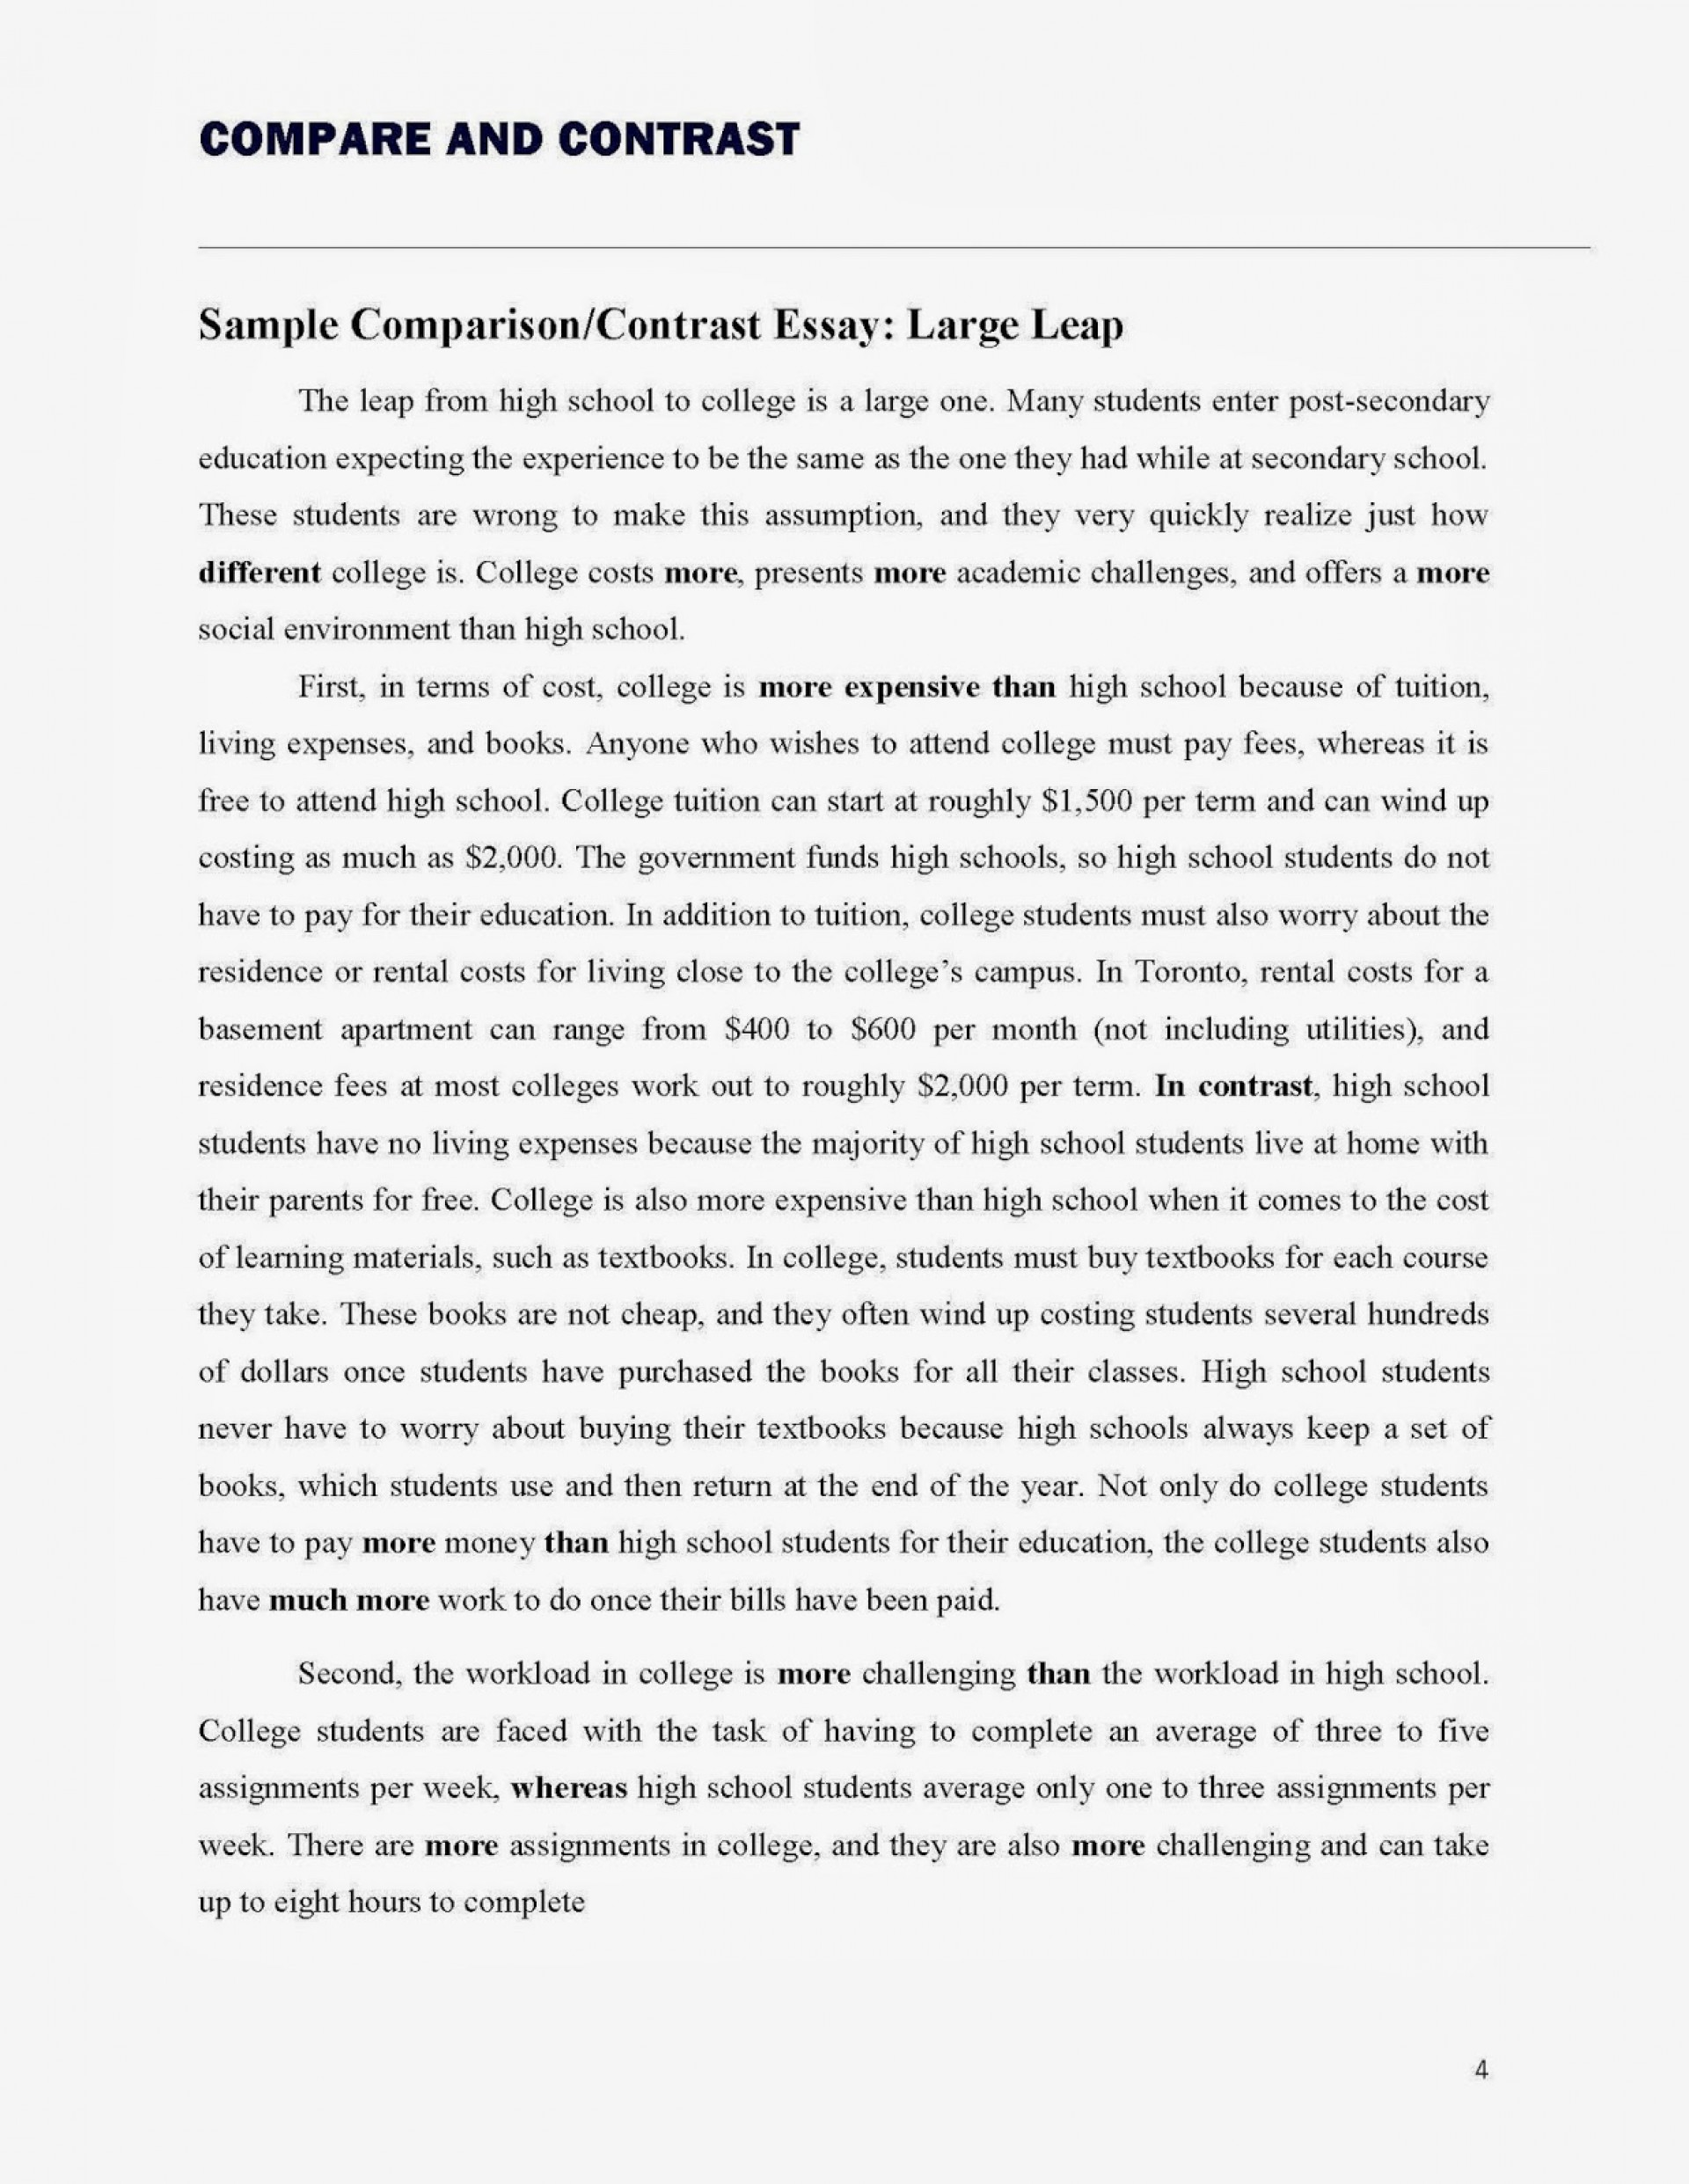 026 Evaluation Essay Topics Compare2band2bcontrast2bessay Page 4 Awful Questions With Criteria 1920